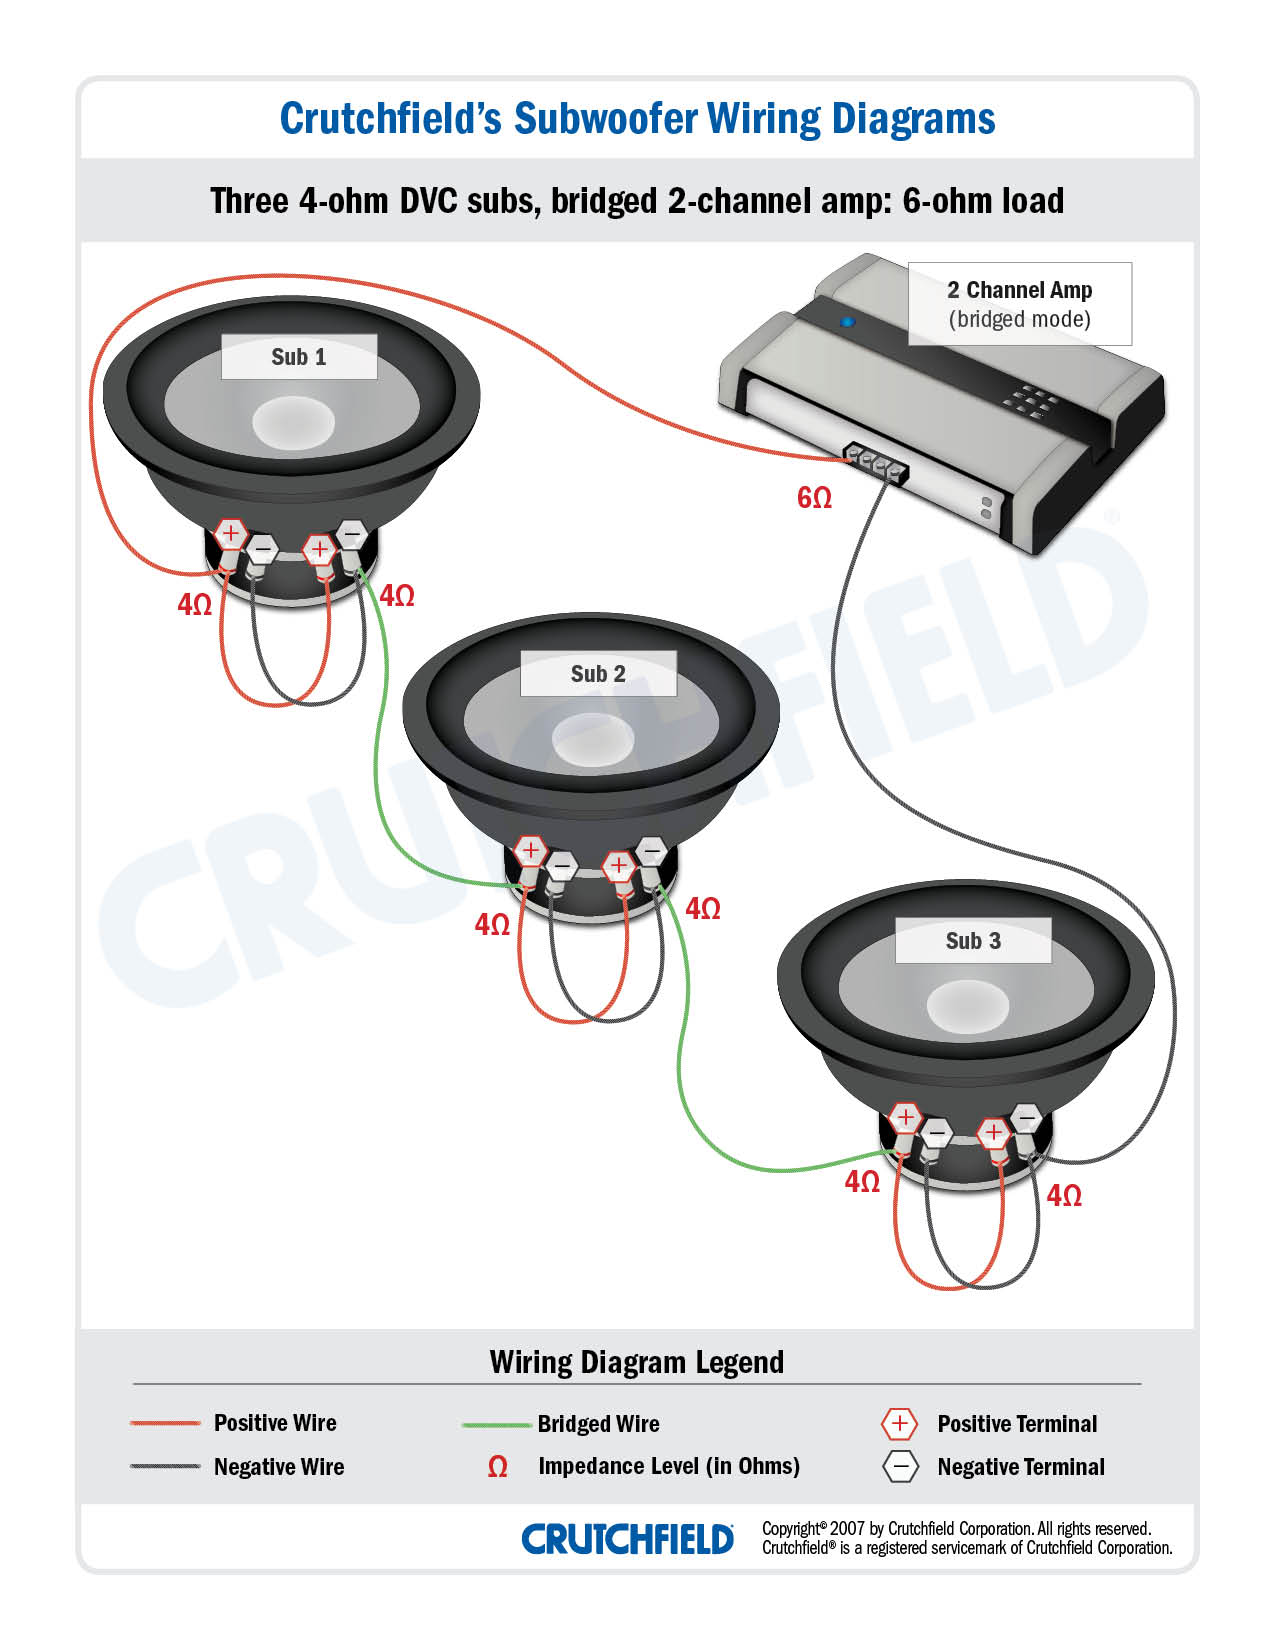 3 DVC 4 ohm 2 ch subwoofer wiring diagrams crutchfield wiring diagrams at creativeand.co